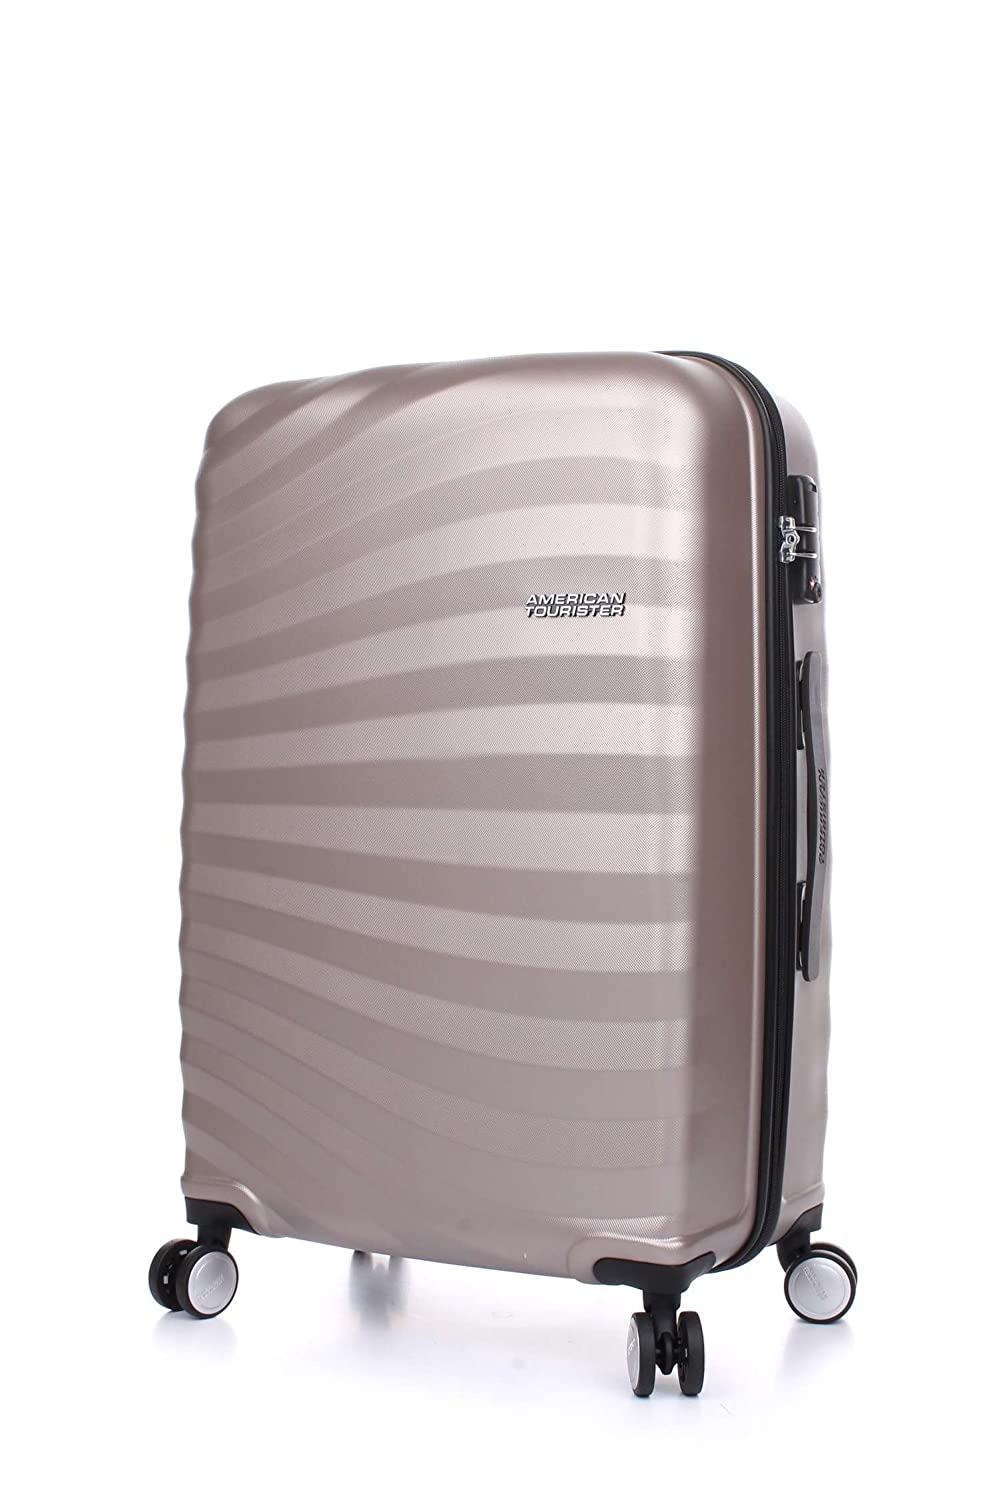 4acd575c1 Samsonite Hand Luggage brown bronze One Size: Amazon.co.uk: Clothing